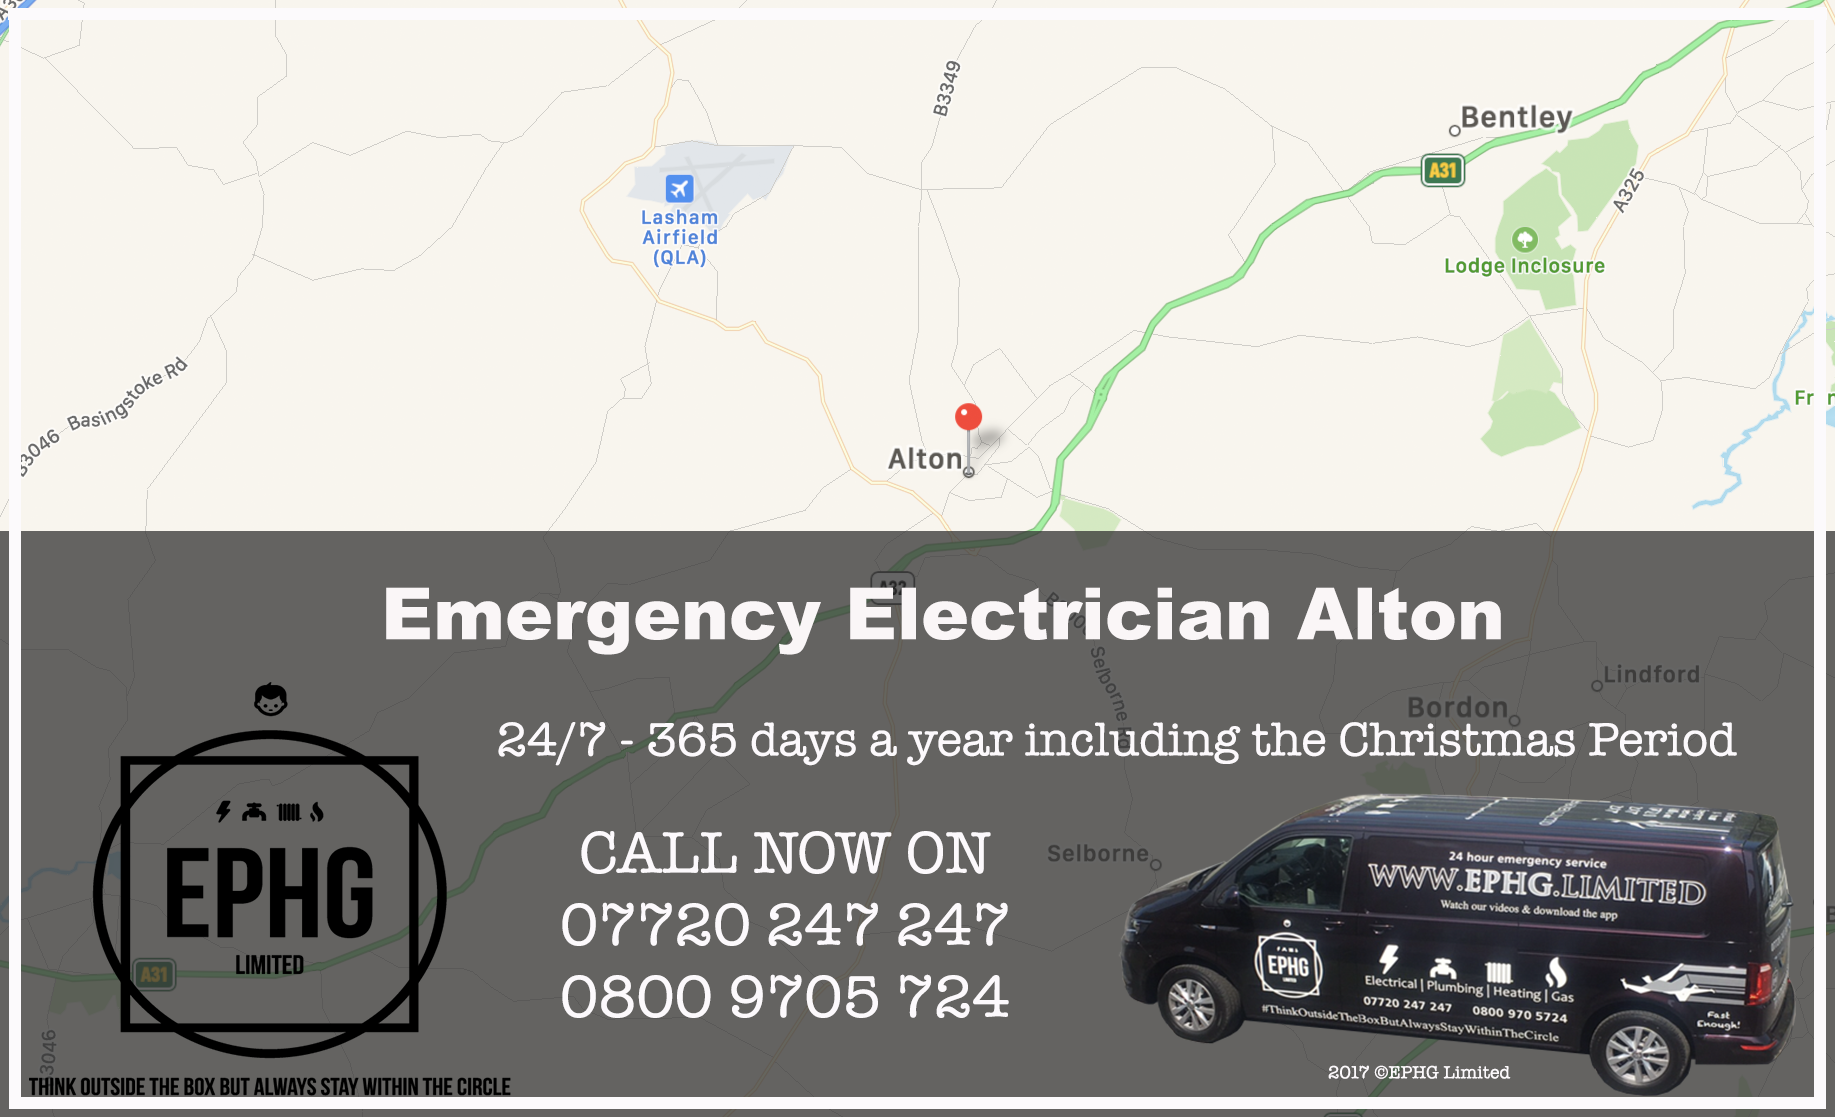 Emergency Electrician Alton